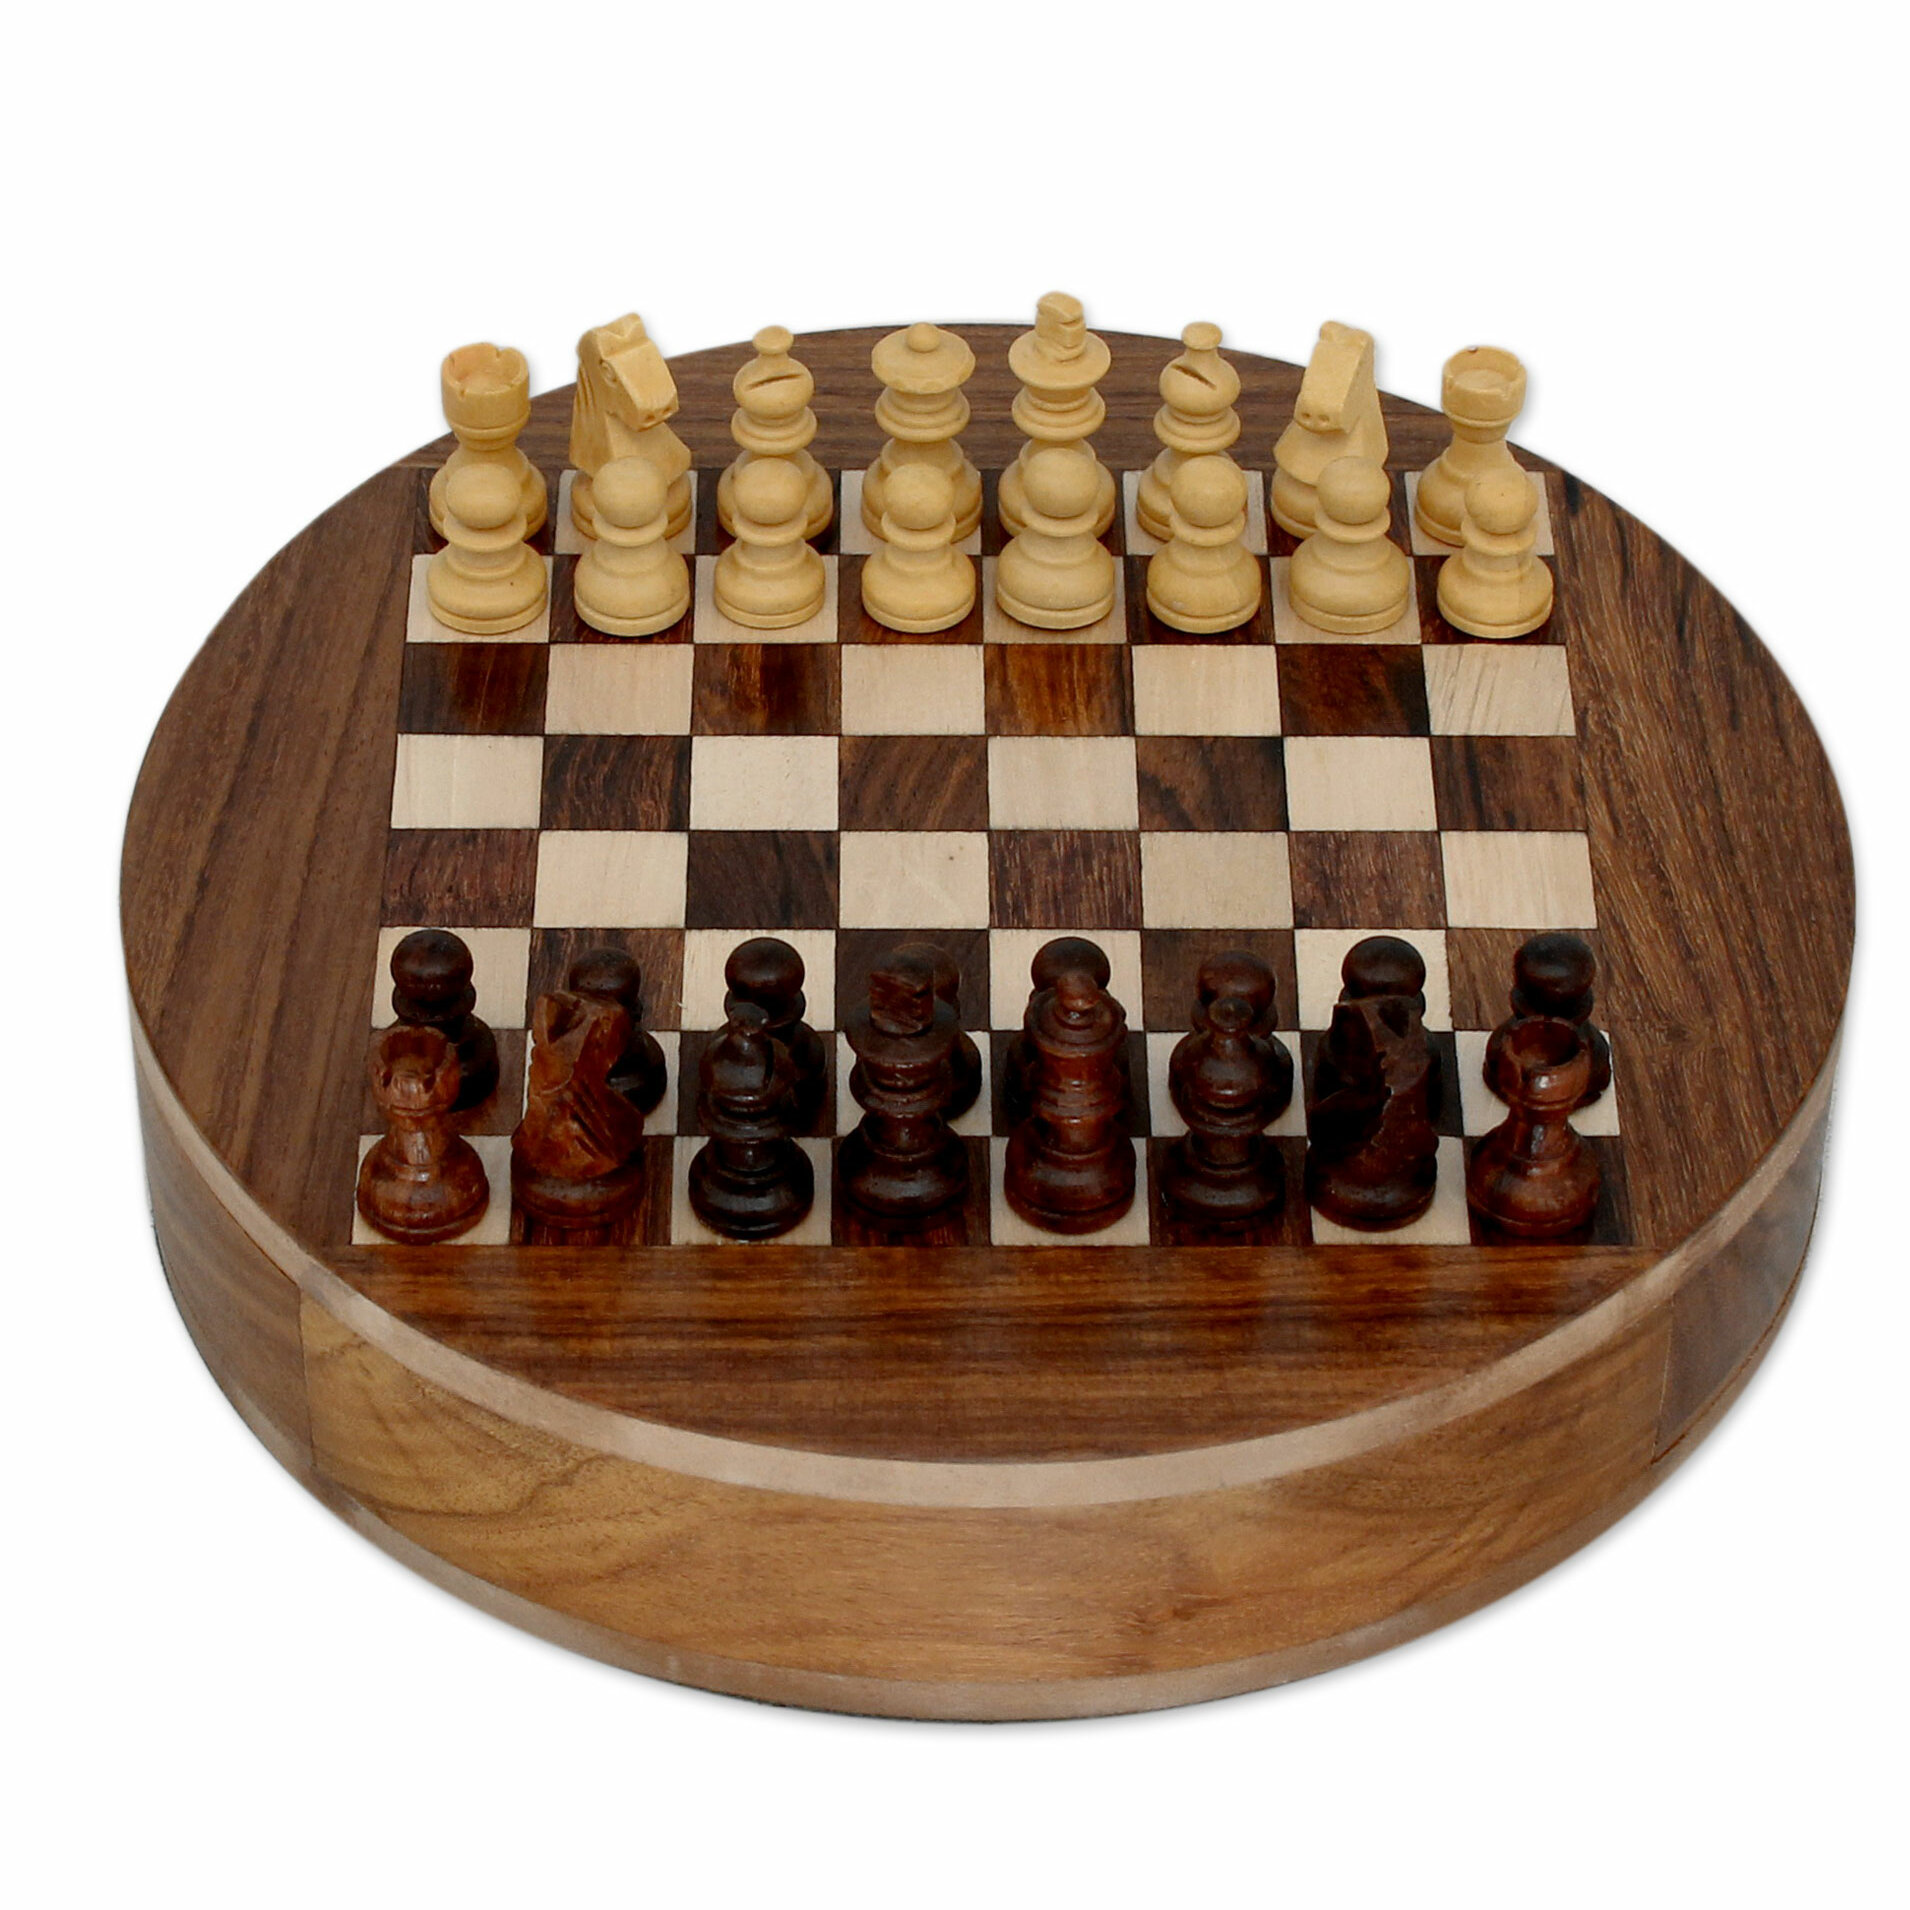 ... Chess Sets Wooden Novica Khyali Ram Decorative Wood Chess Board With  Storage Drawer ...